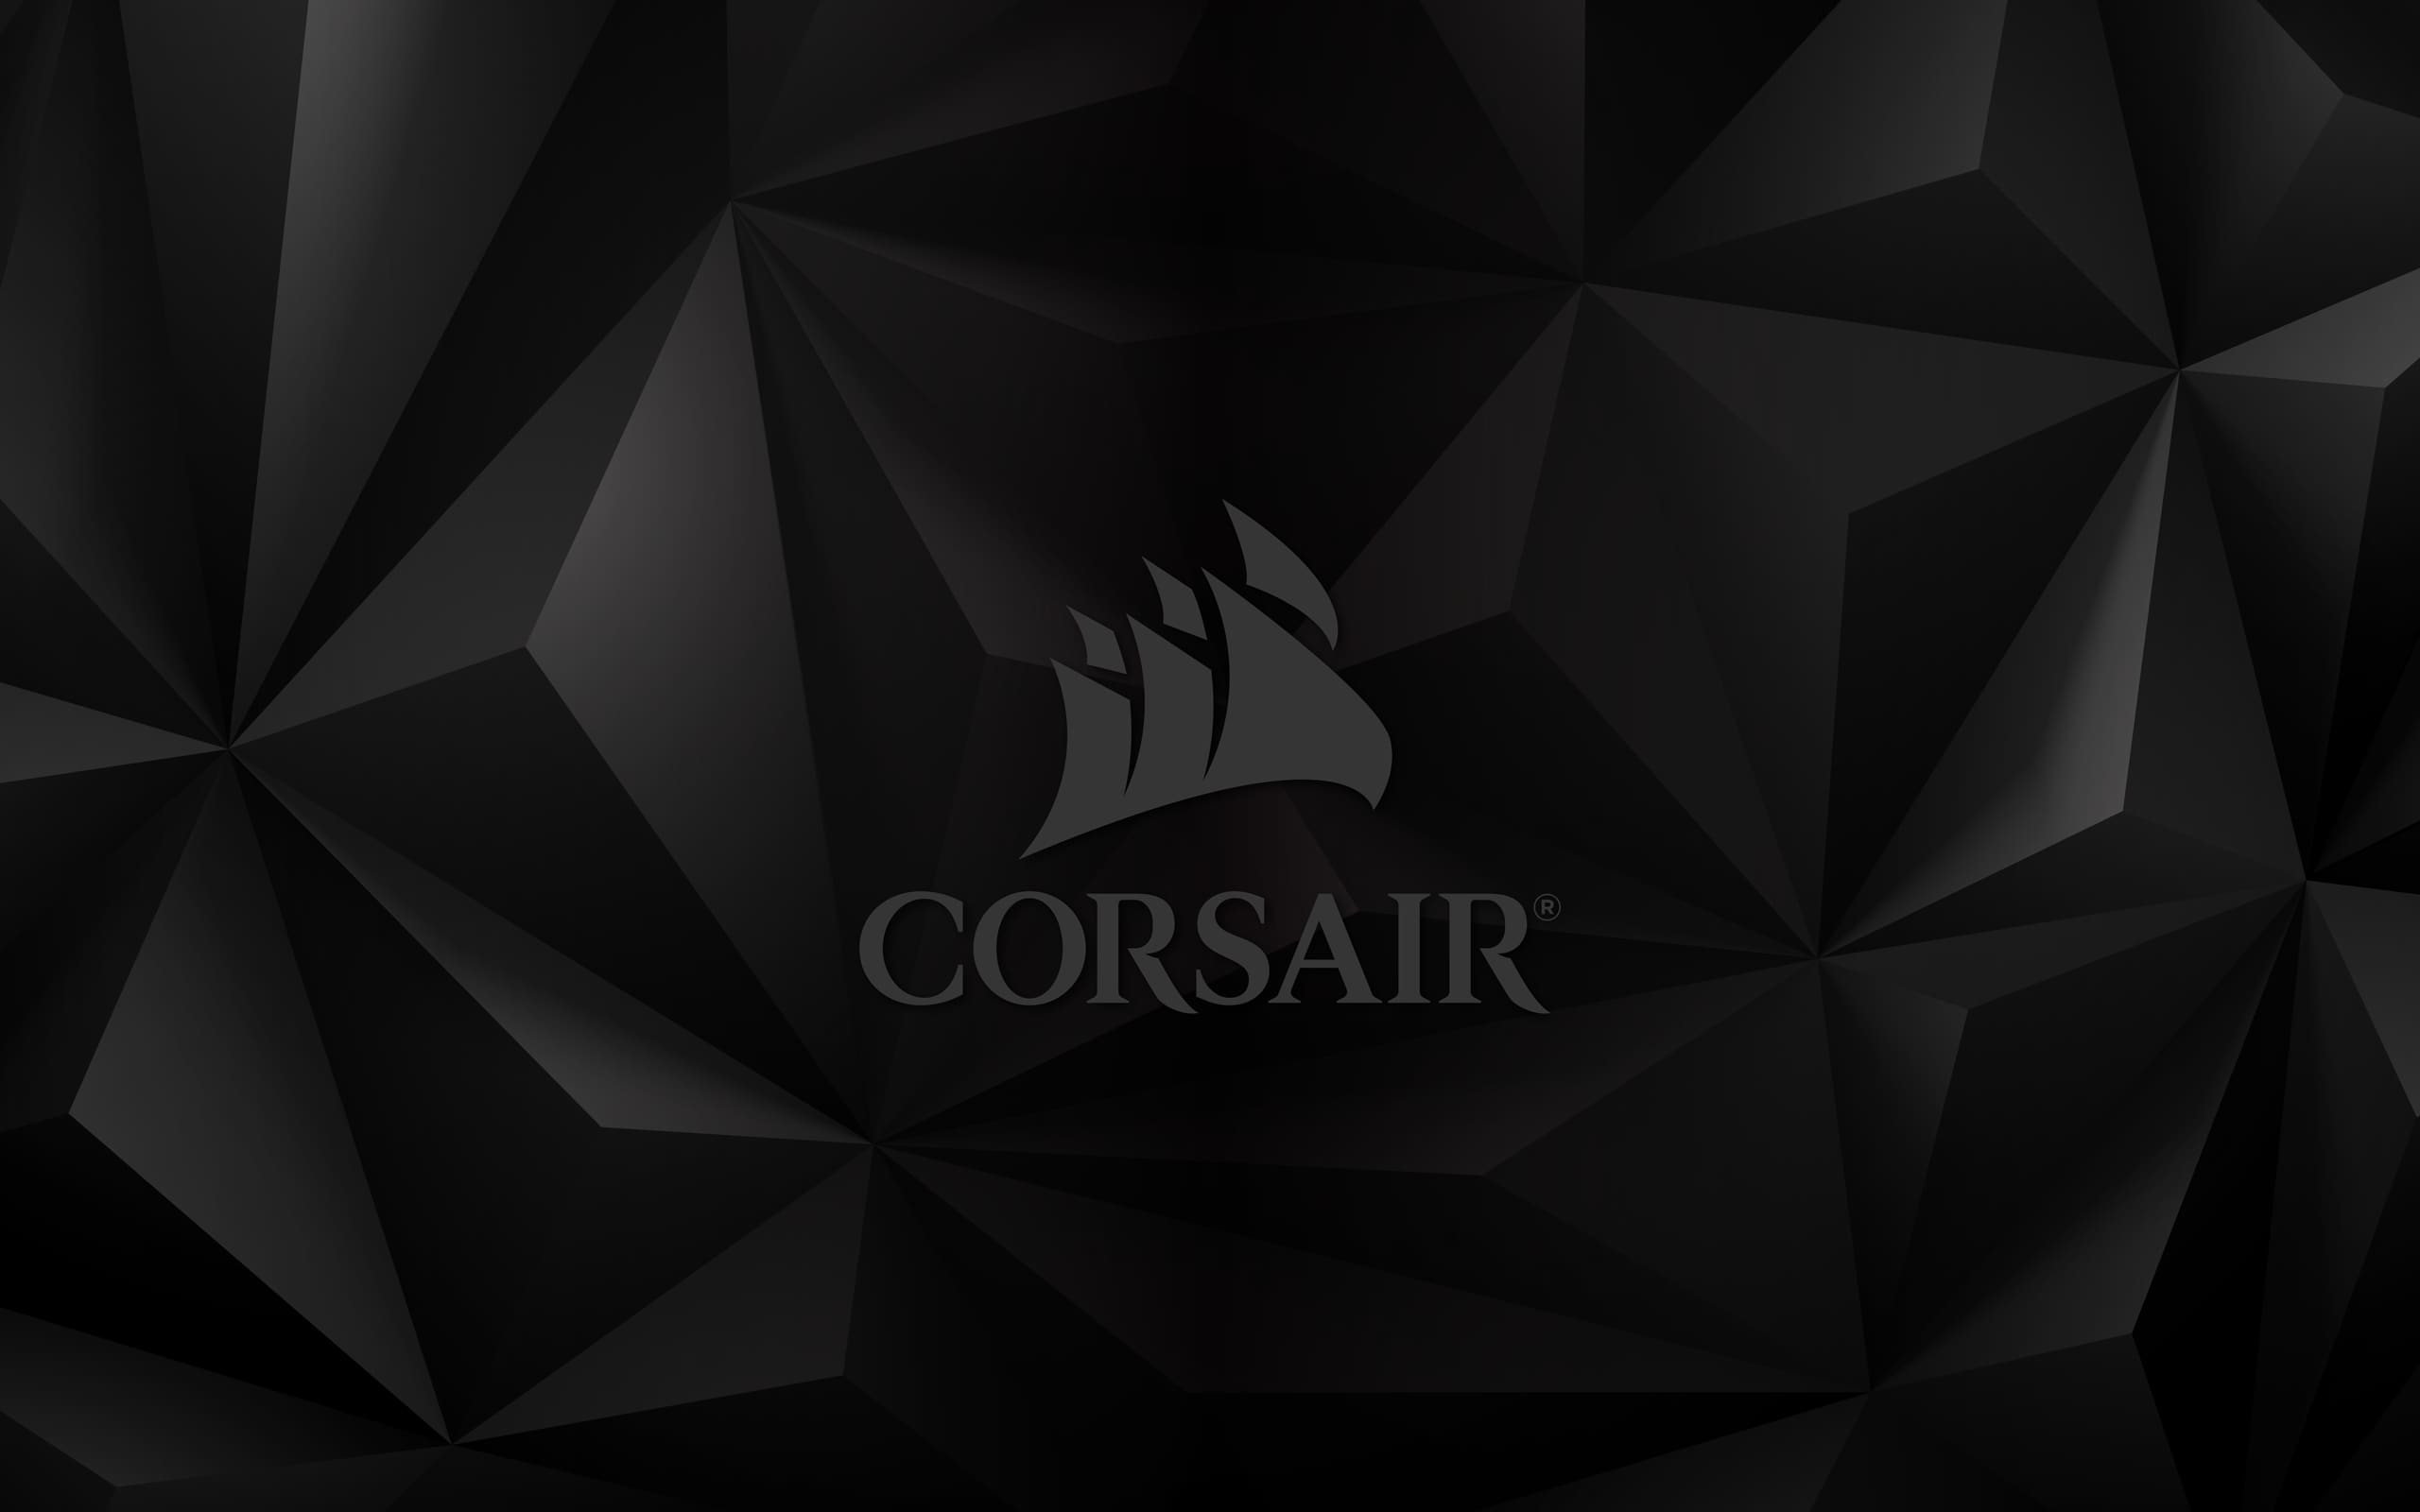 Corsair Wallpapers